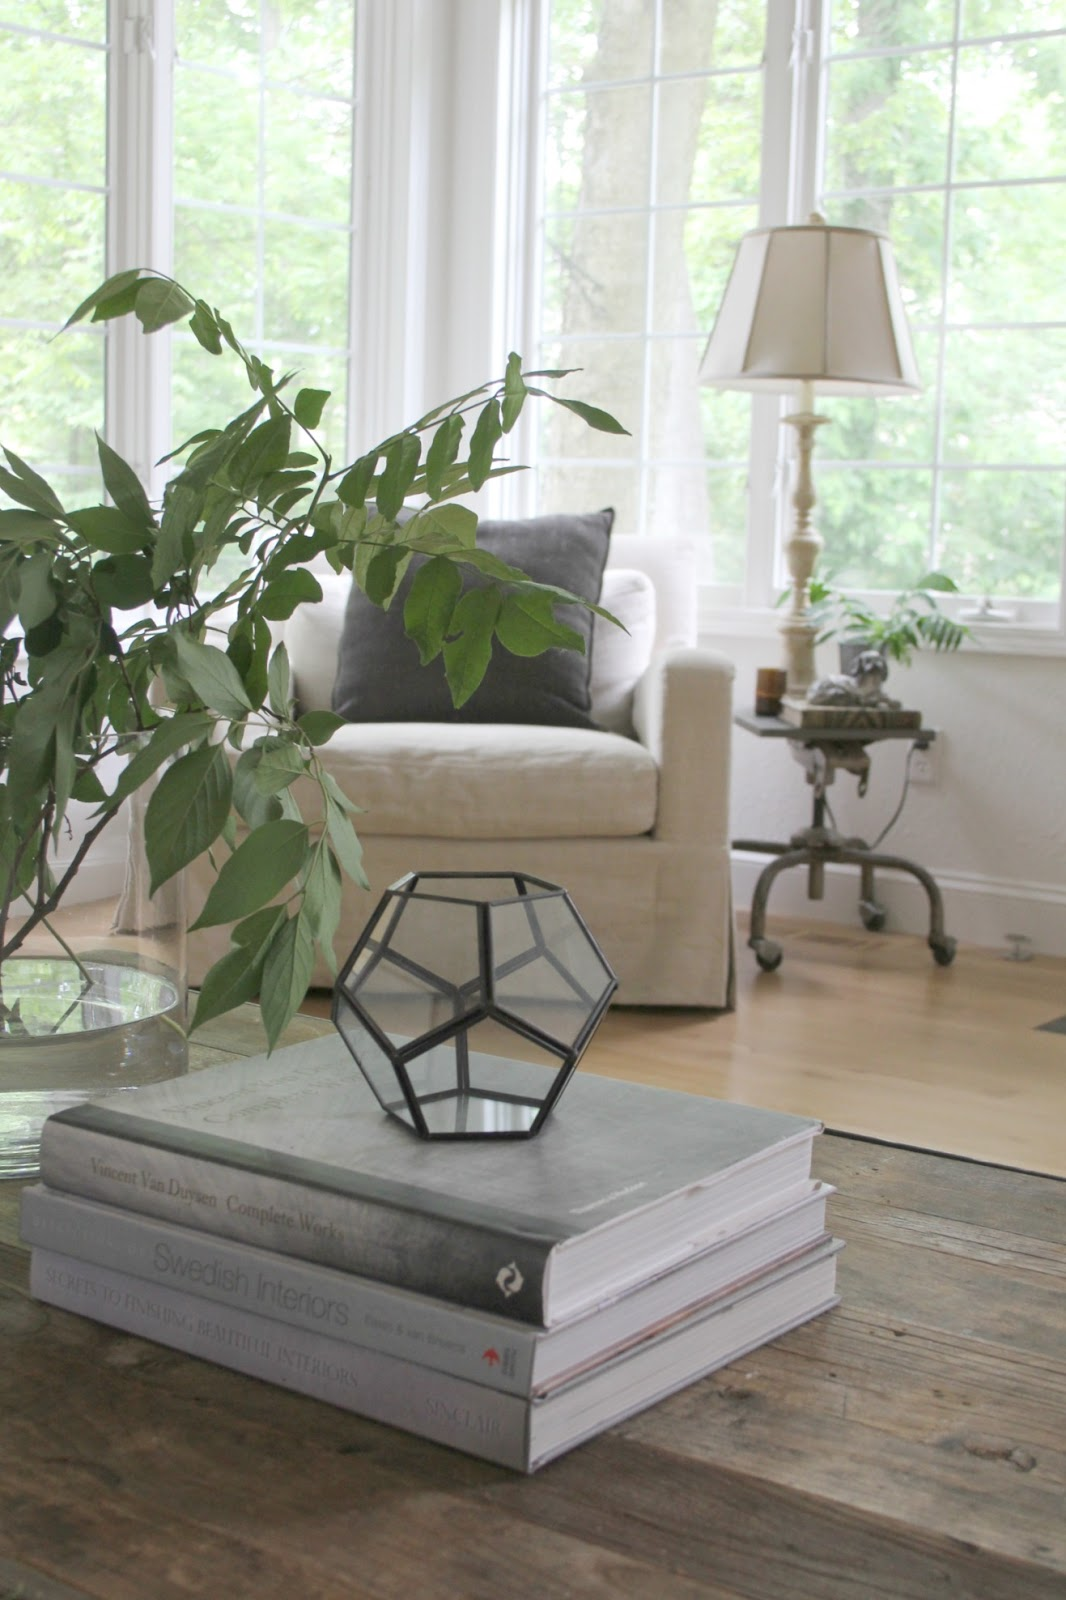 Belgian linen arm chair and industrial side table in my living room wih European country style - Hello Lovely Studio. Come be inspired by Get the Look: Warm White Living Room Design With Unfussy Sophisticated Style...certainly soothing indeed.